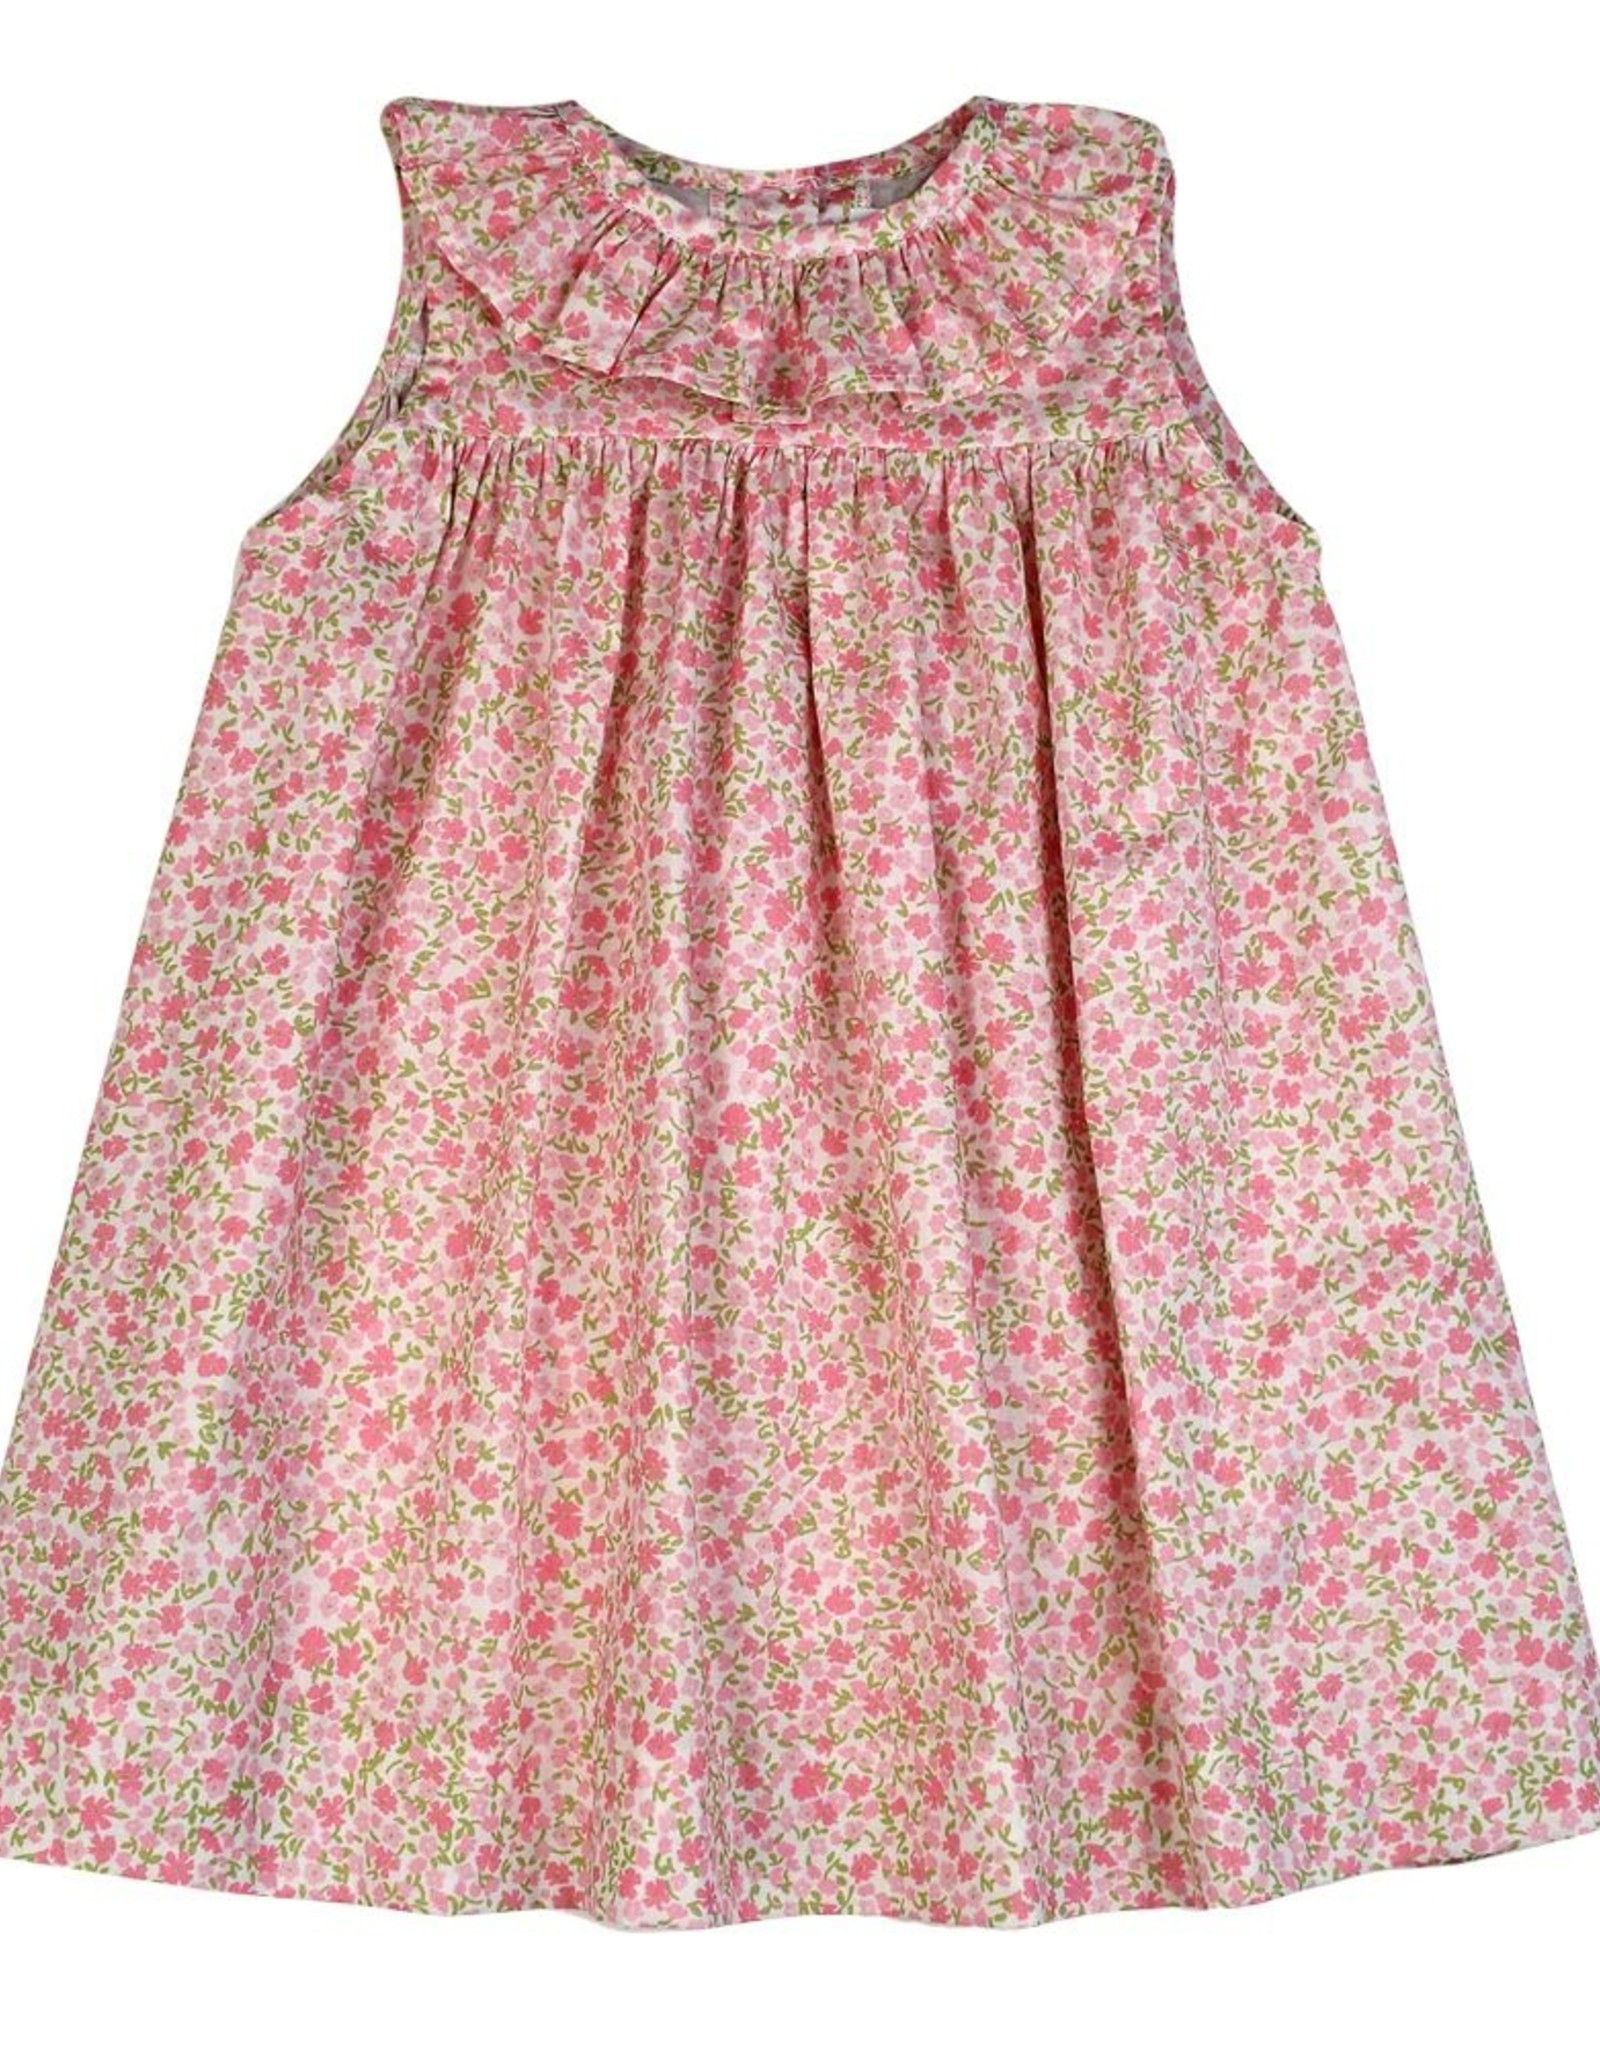 Funtasia Too Floral Ruffle Dress Pink